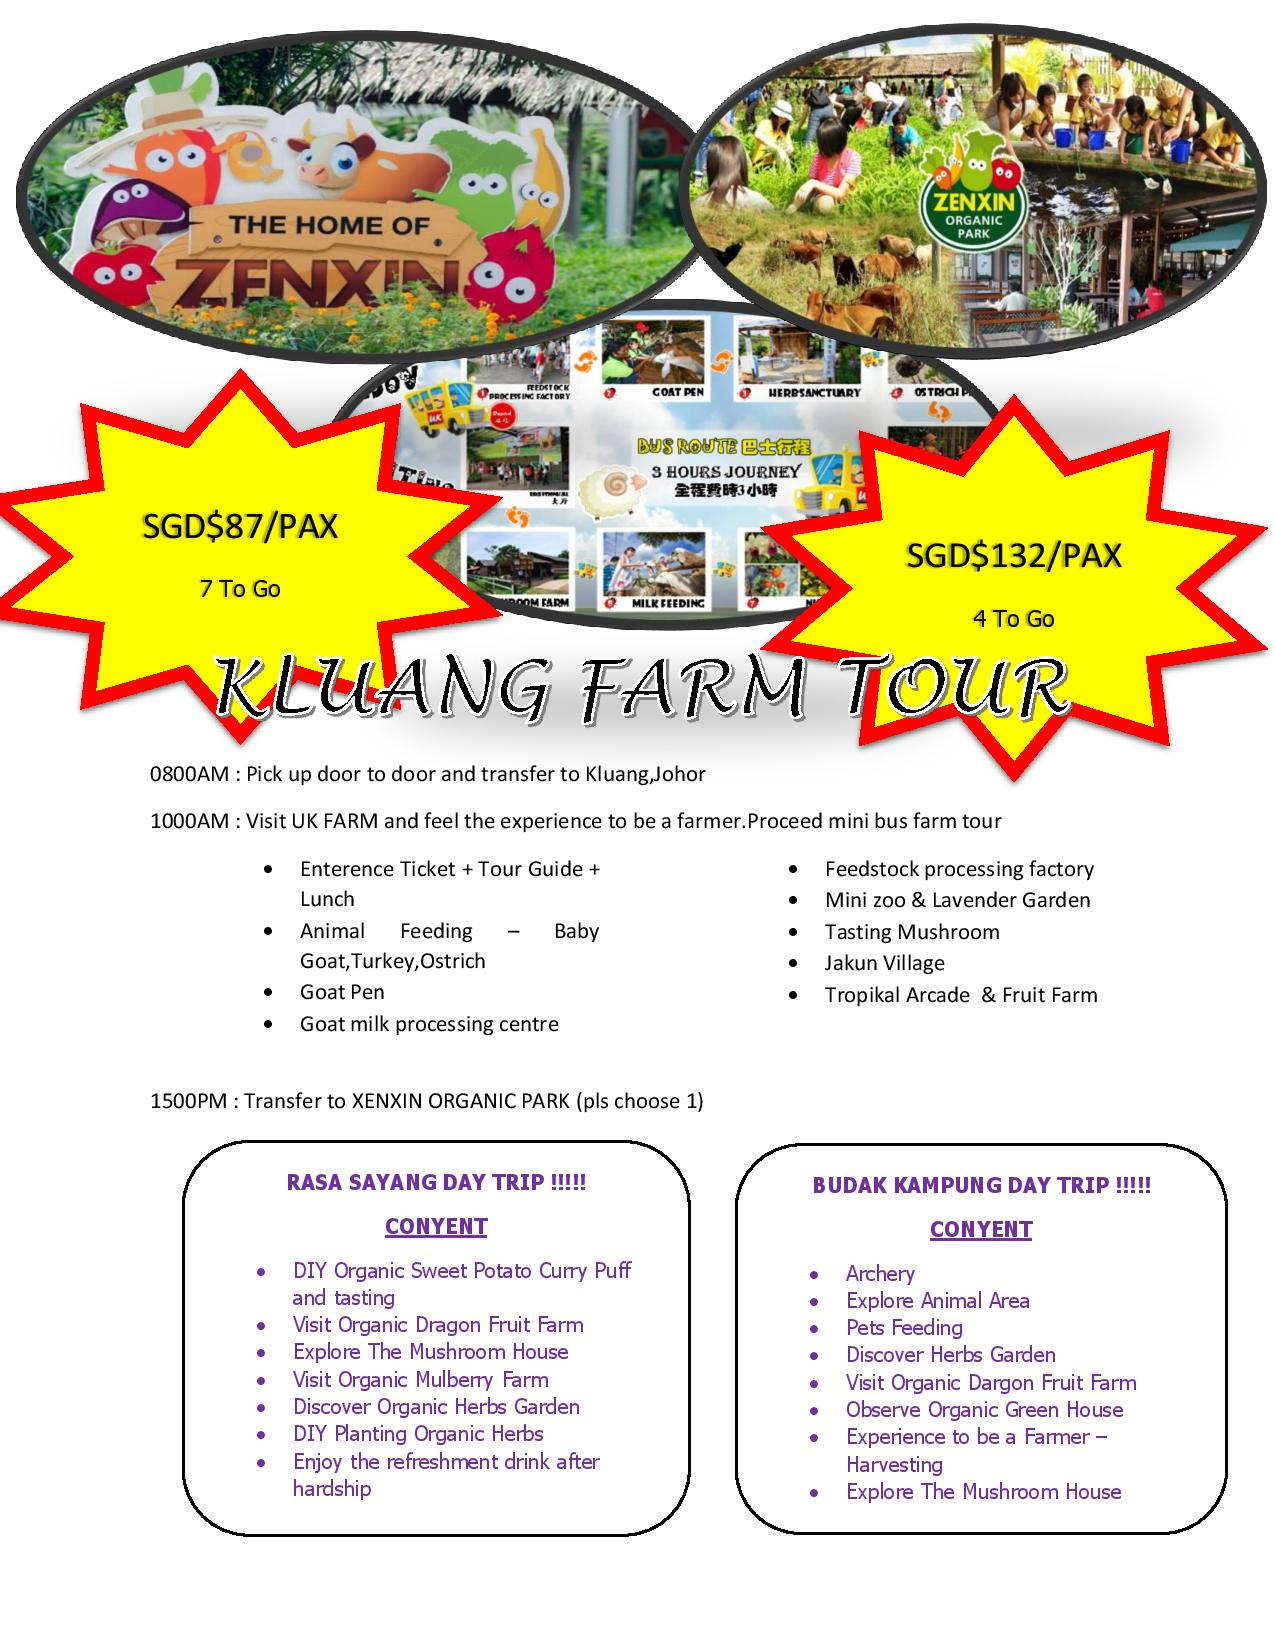 Xenxin Organic Park + UK Farm Day Tour